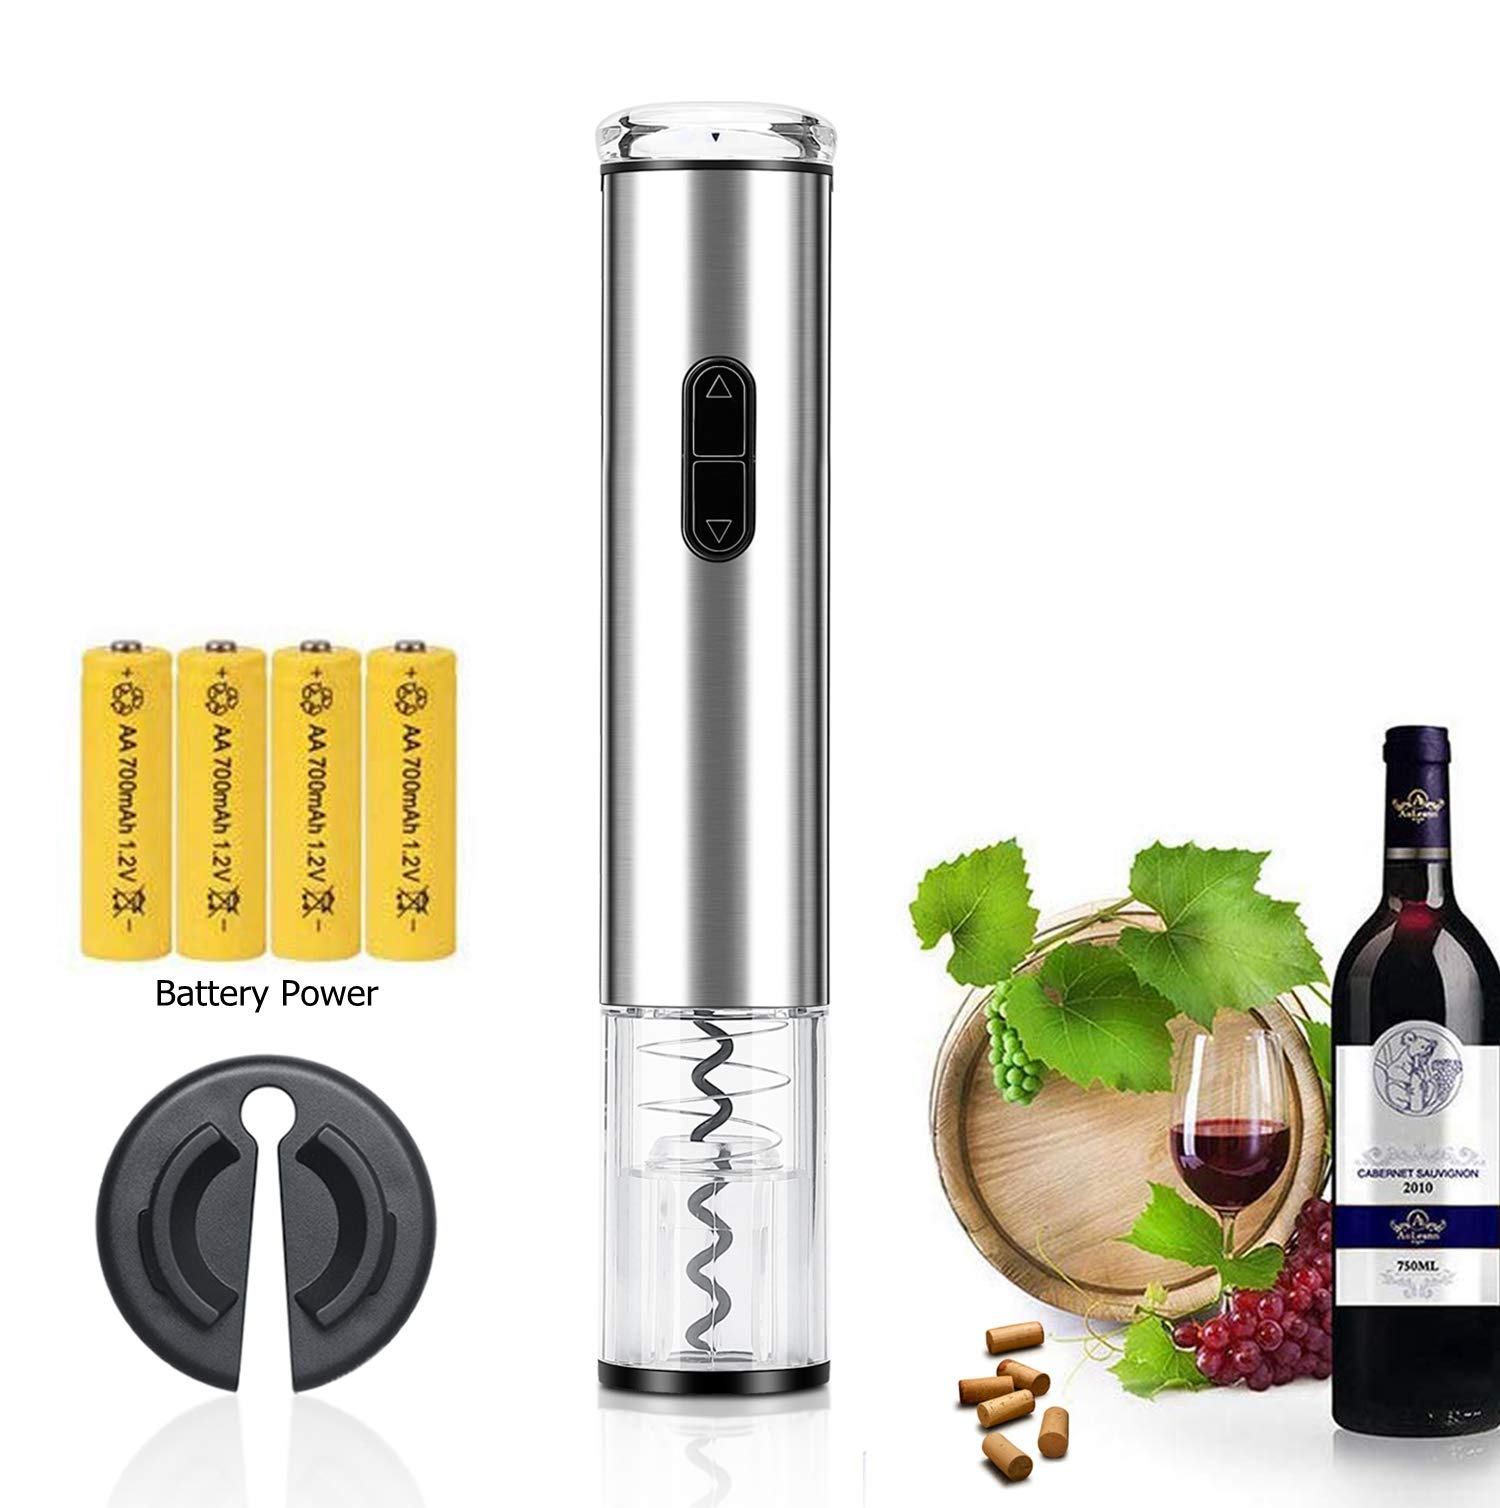 Electric Wine Opener, Automatic Wine Opener Corkscrew Battery Operated Bottle Openers with Foil Cutter Stainless Steel (Batteries not Include)